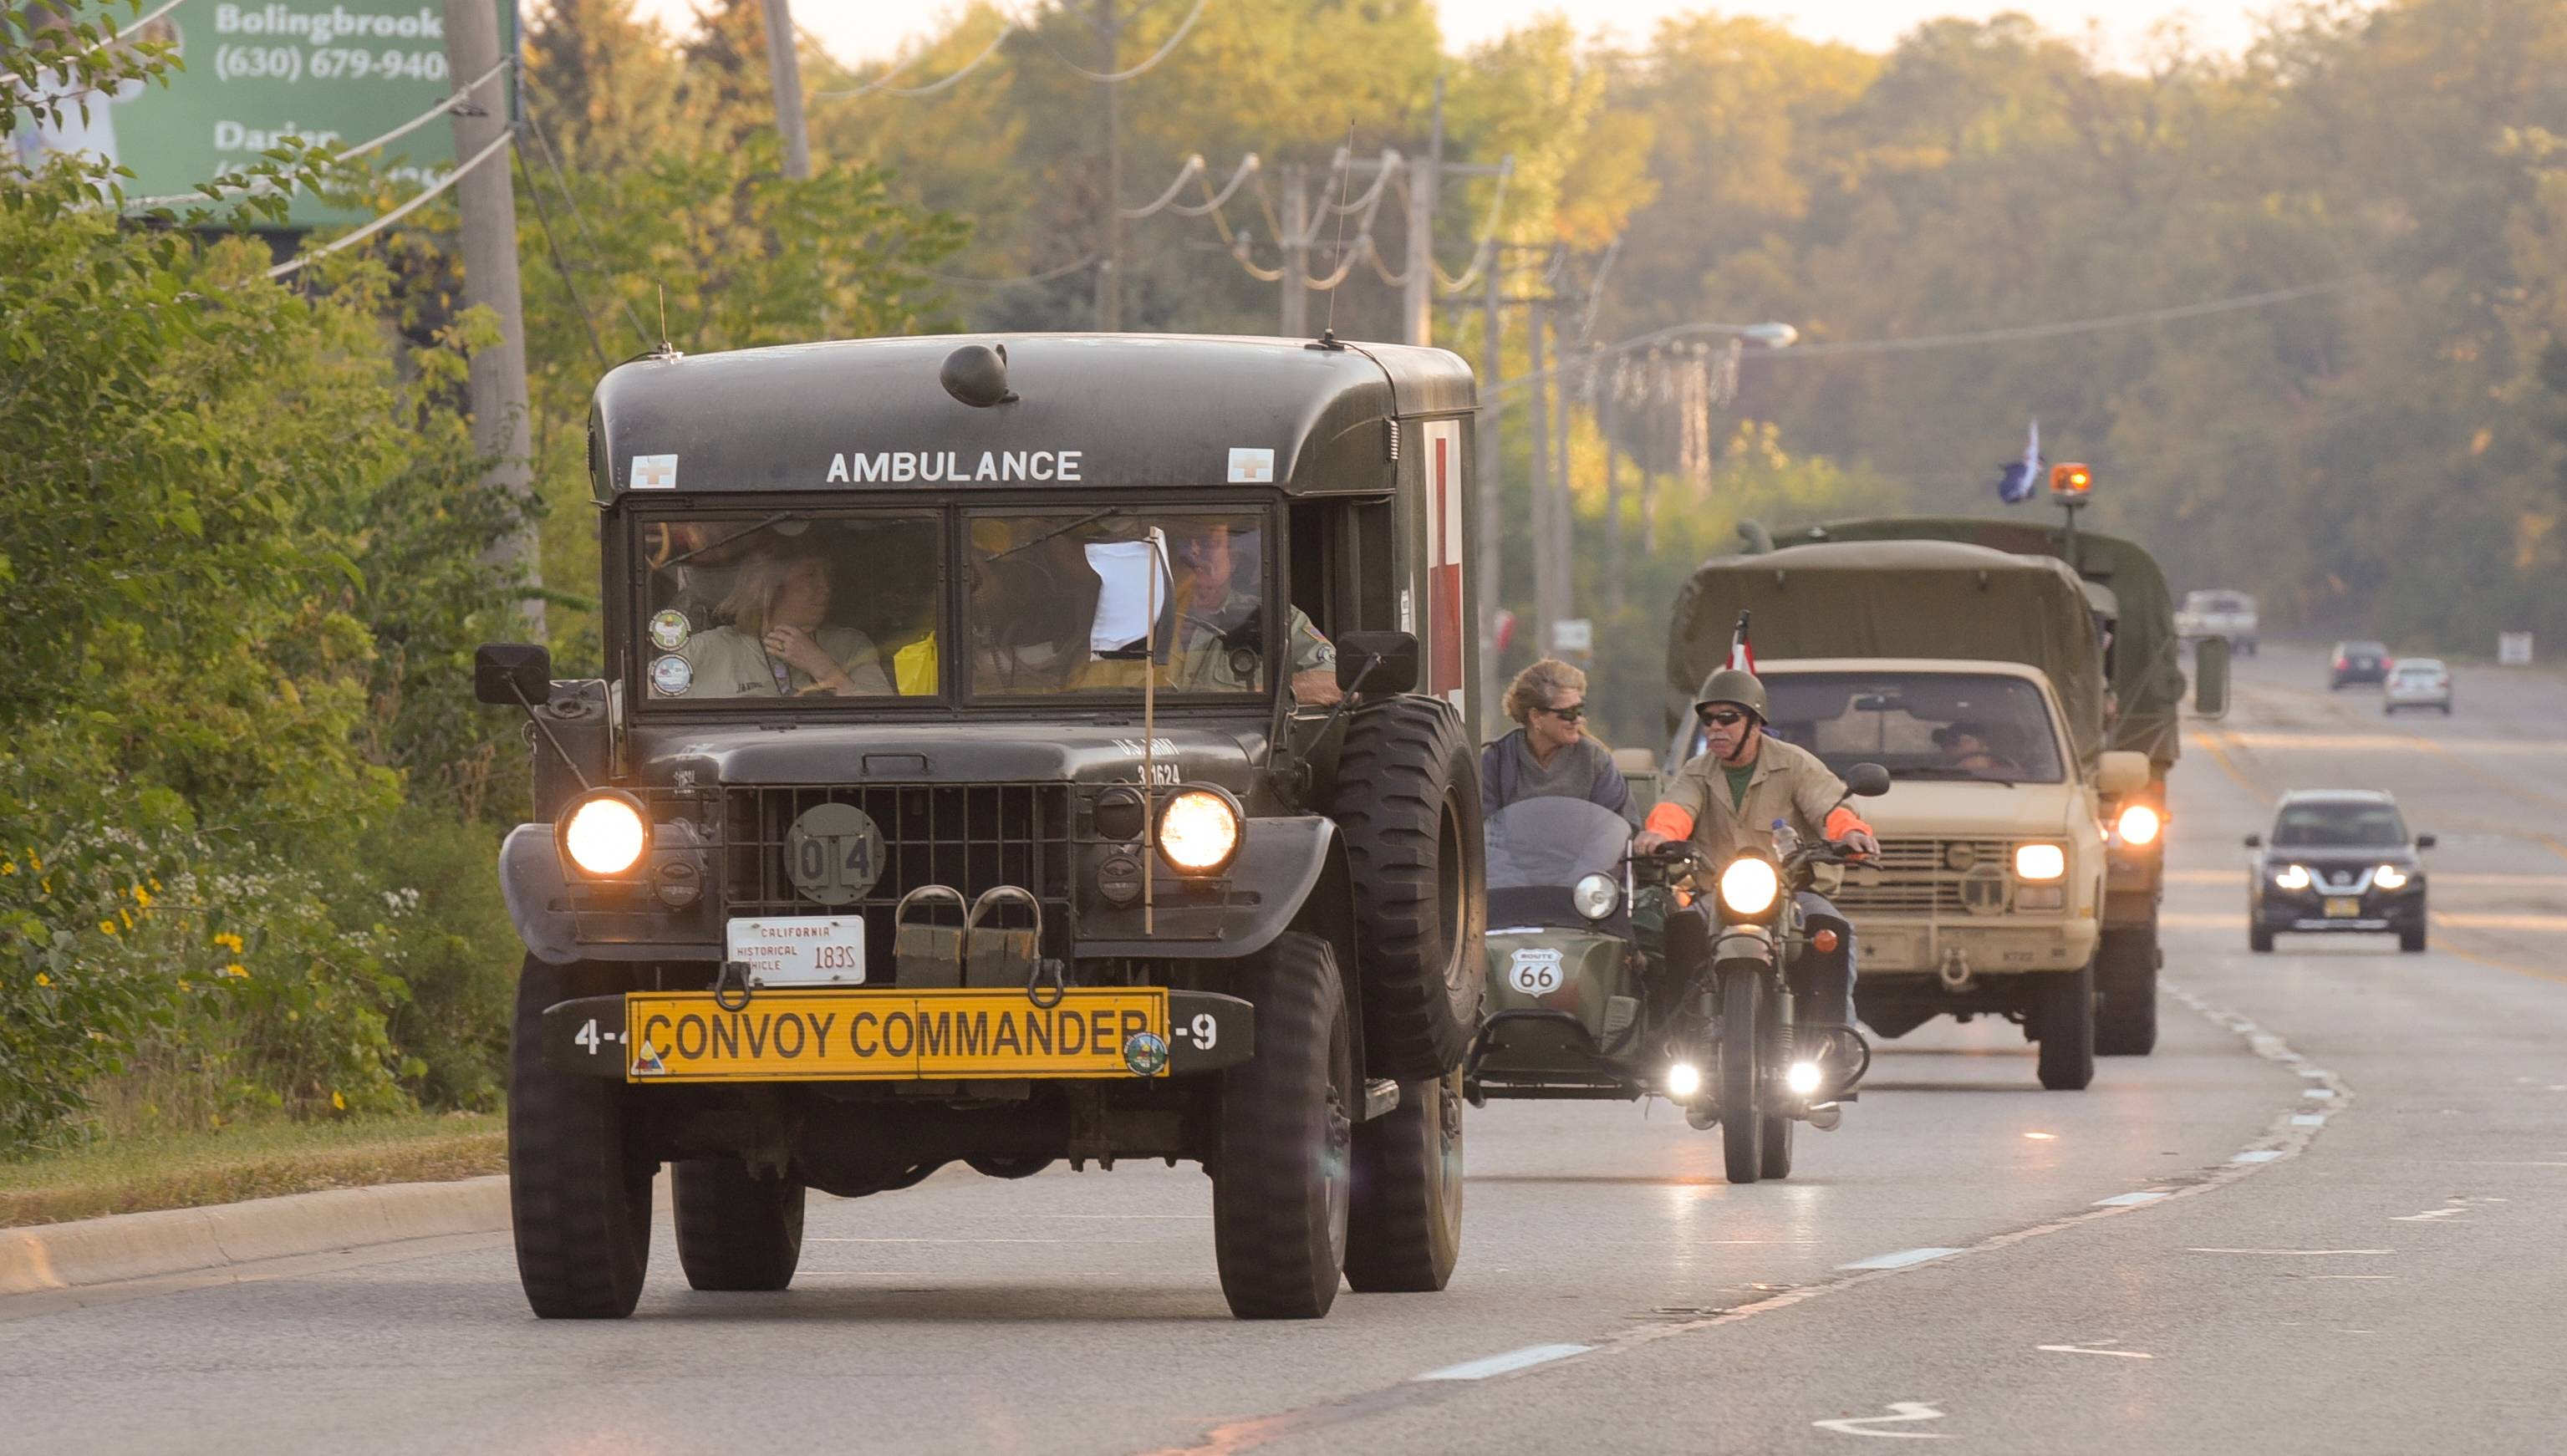 In their 1964 Dodge military ambulance, Dan and Janine McCluskey of Simi Valley, California, lead a convoy of vintage military vehicles that left the DuPage County Fairgrounds in Wheaton shortly after dawn Saturday. The group of 60 vehicles will travel on historic U.S. Route 66 to Santa Monica, California.